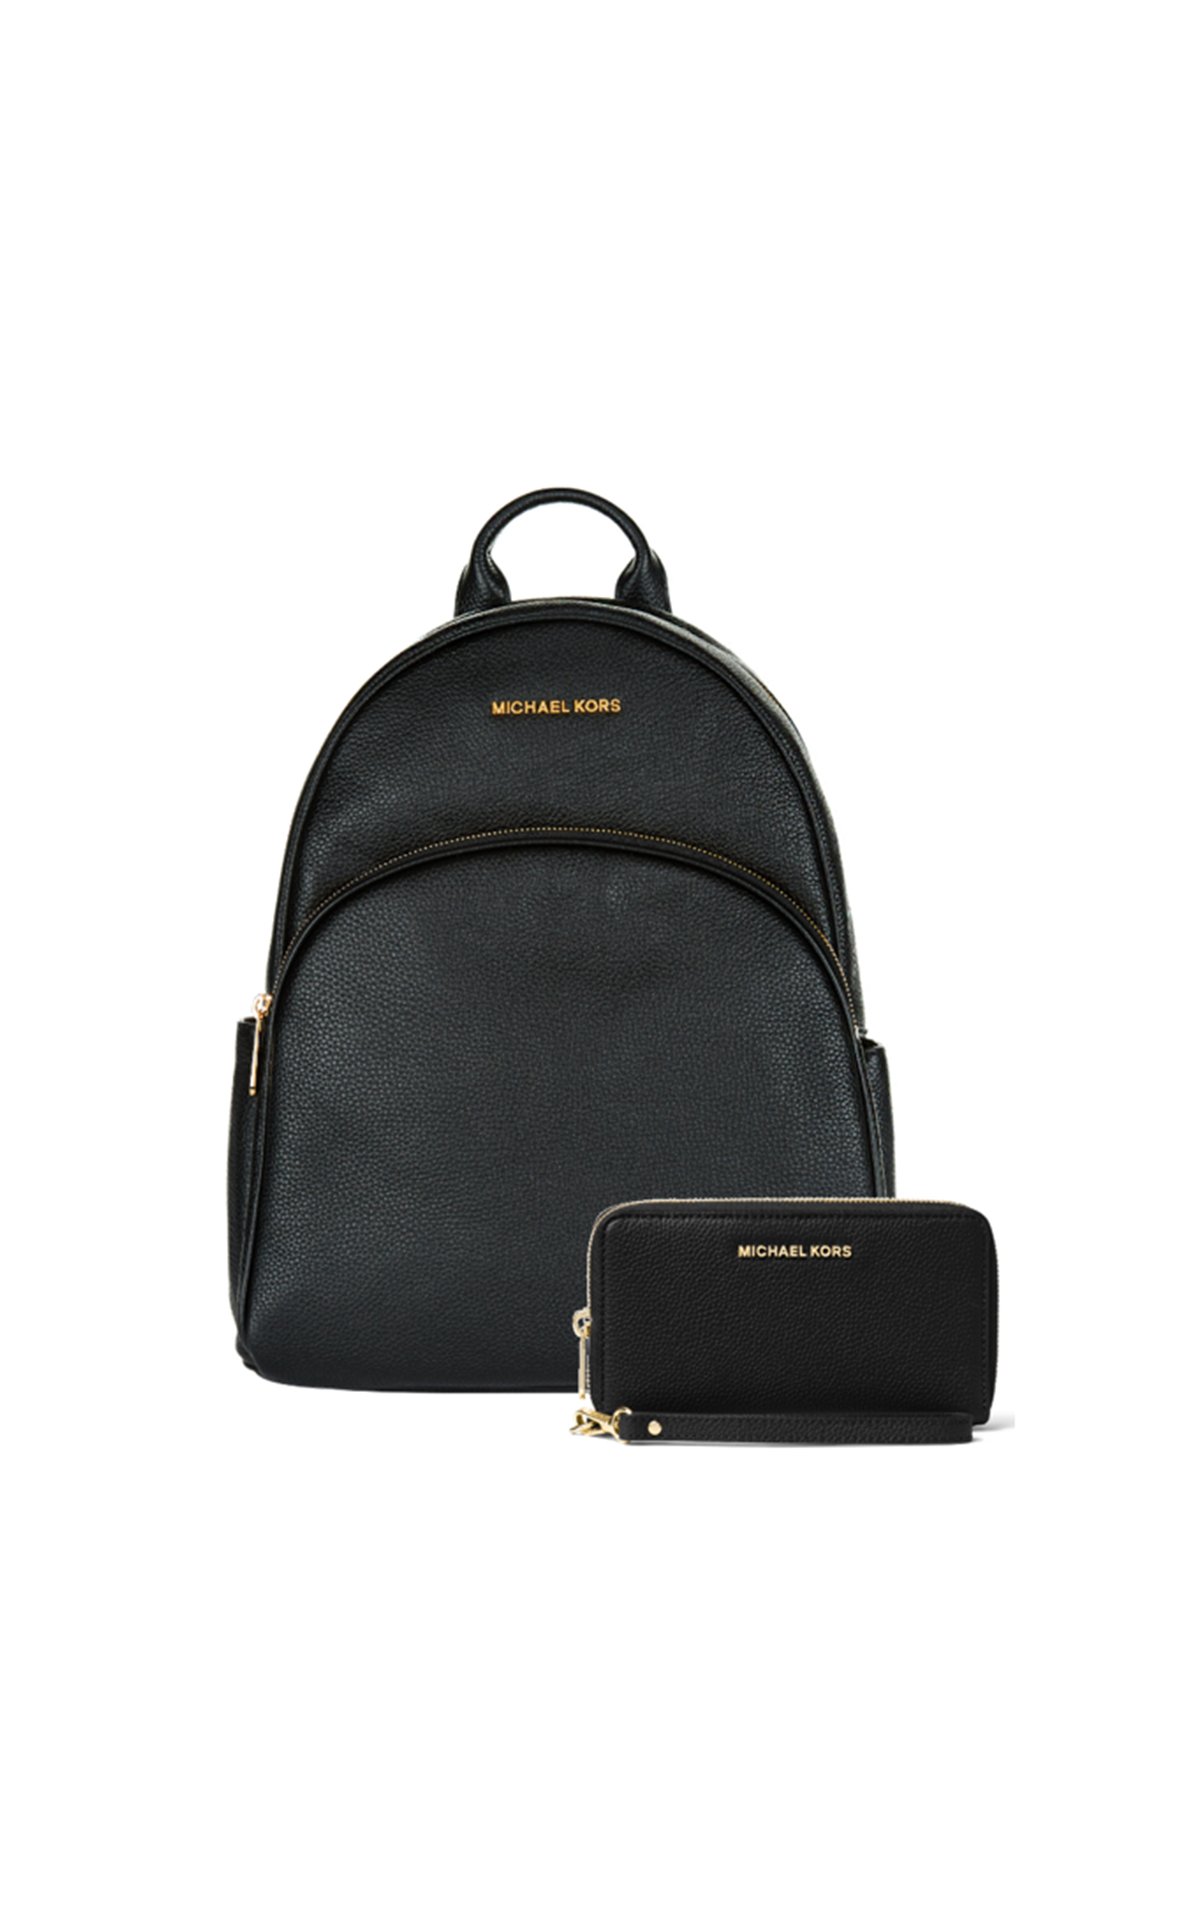 Michael kors Abbey backpack & phone case at The Bicester Village Shopping Collection